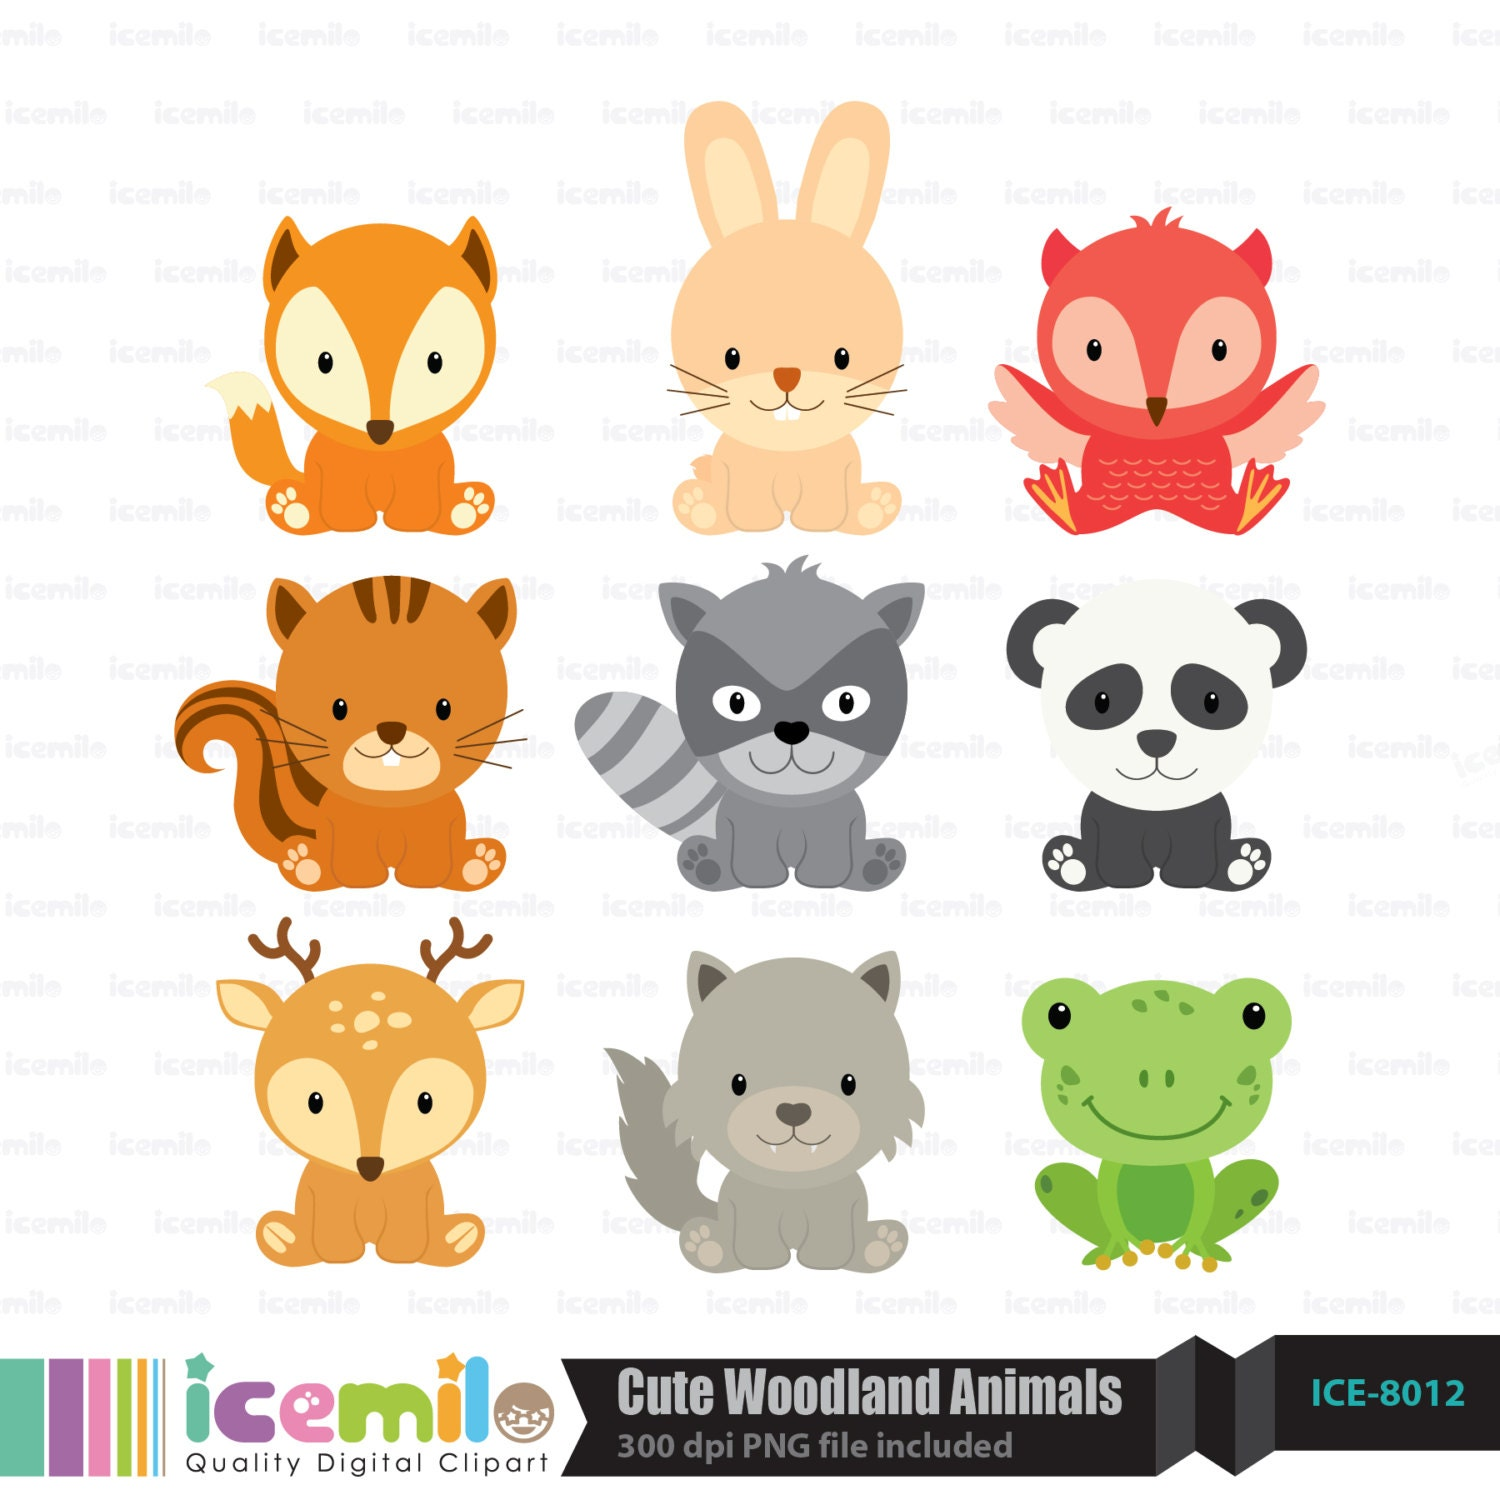 Baby forest animals clipart - photo#22